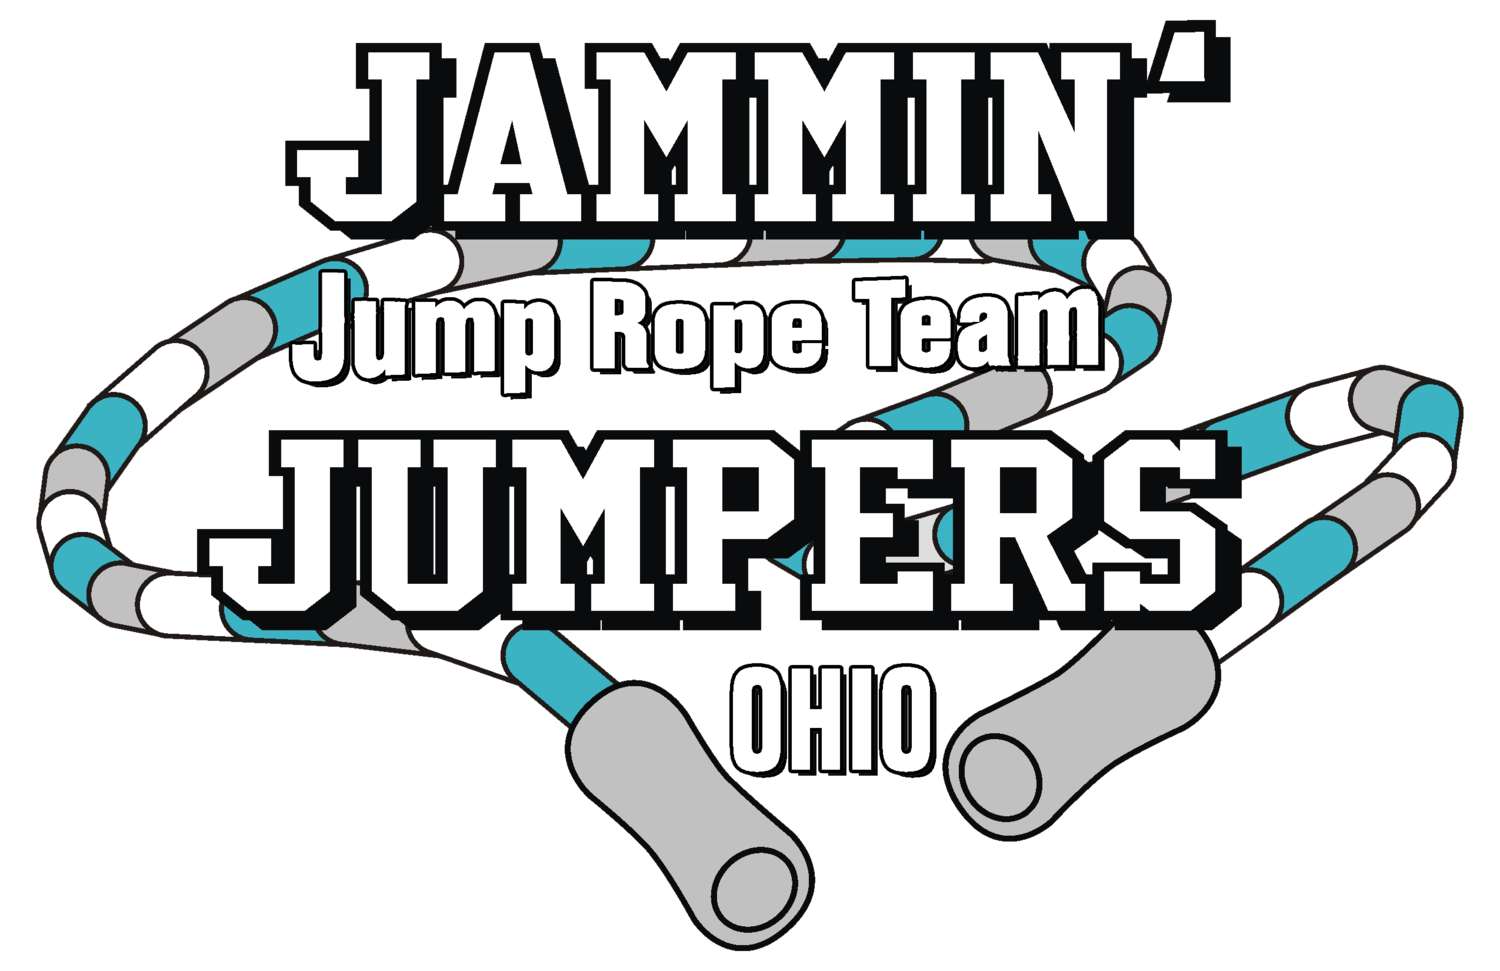 Jammin' Jumpers Jump Rope Team